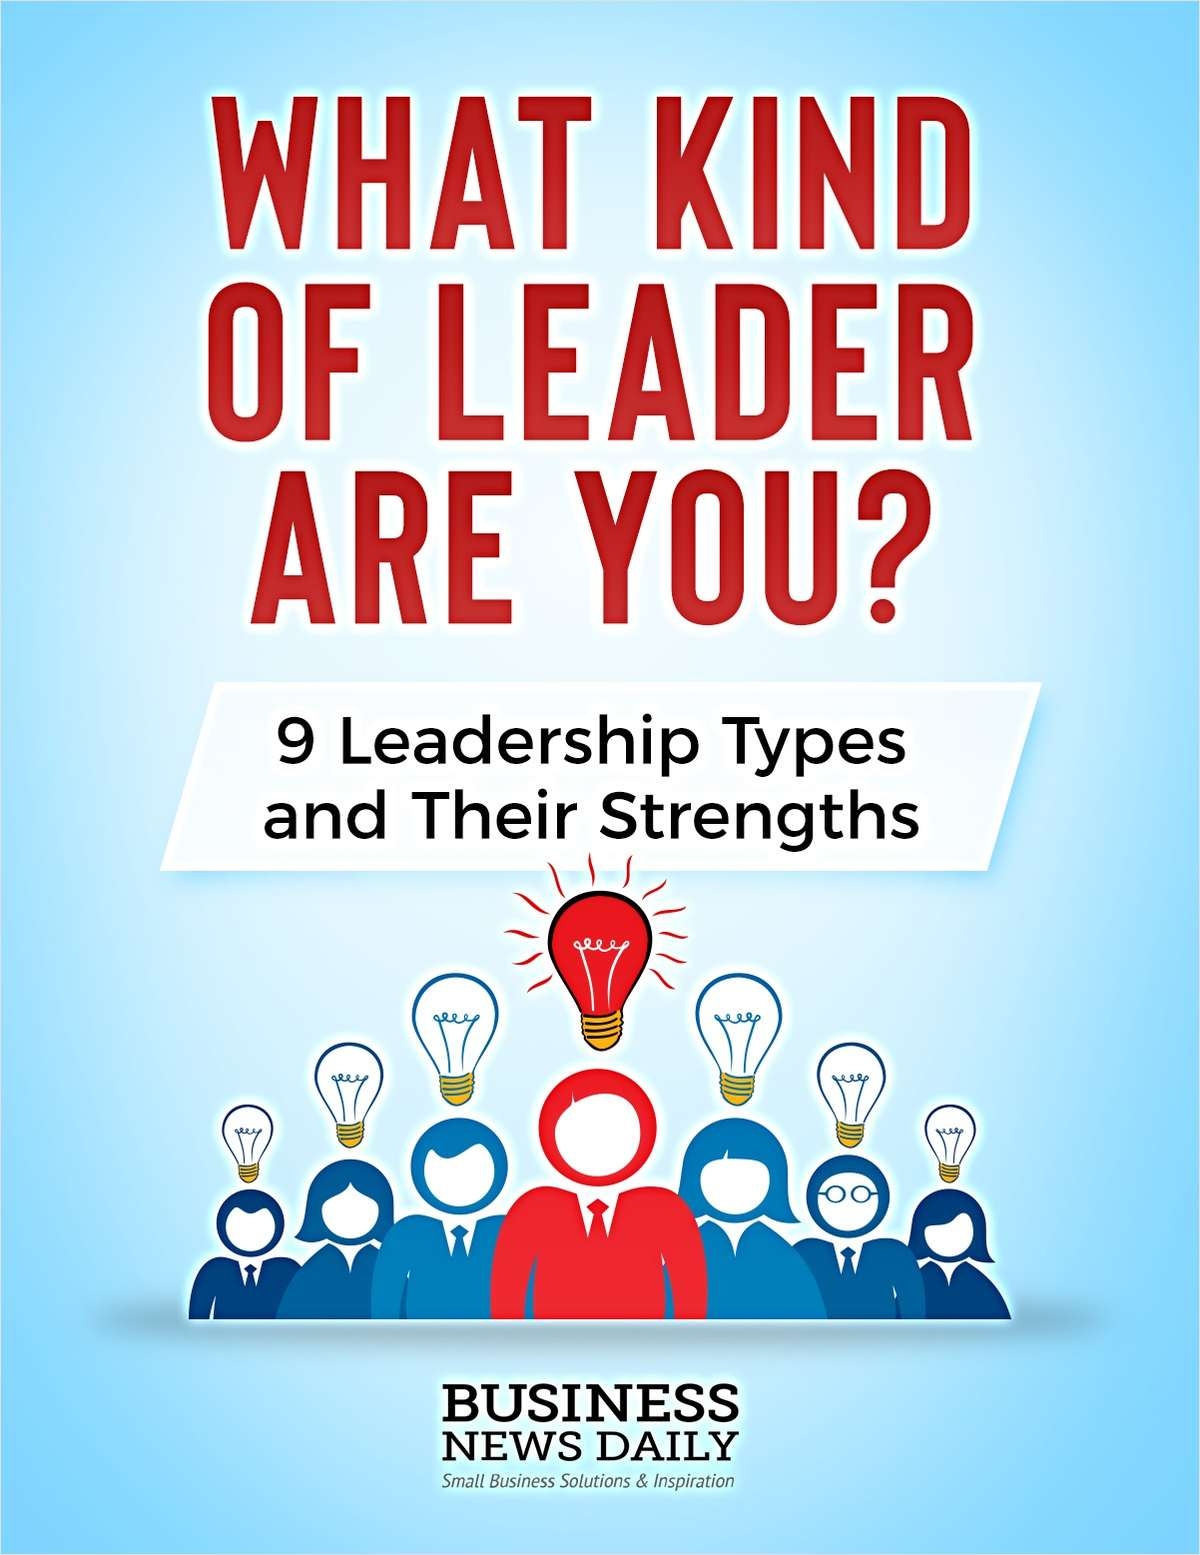 What Kind of Leader Are You? 9 Leadership Types and Their Strengths